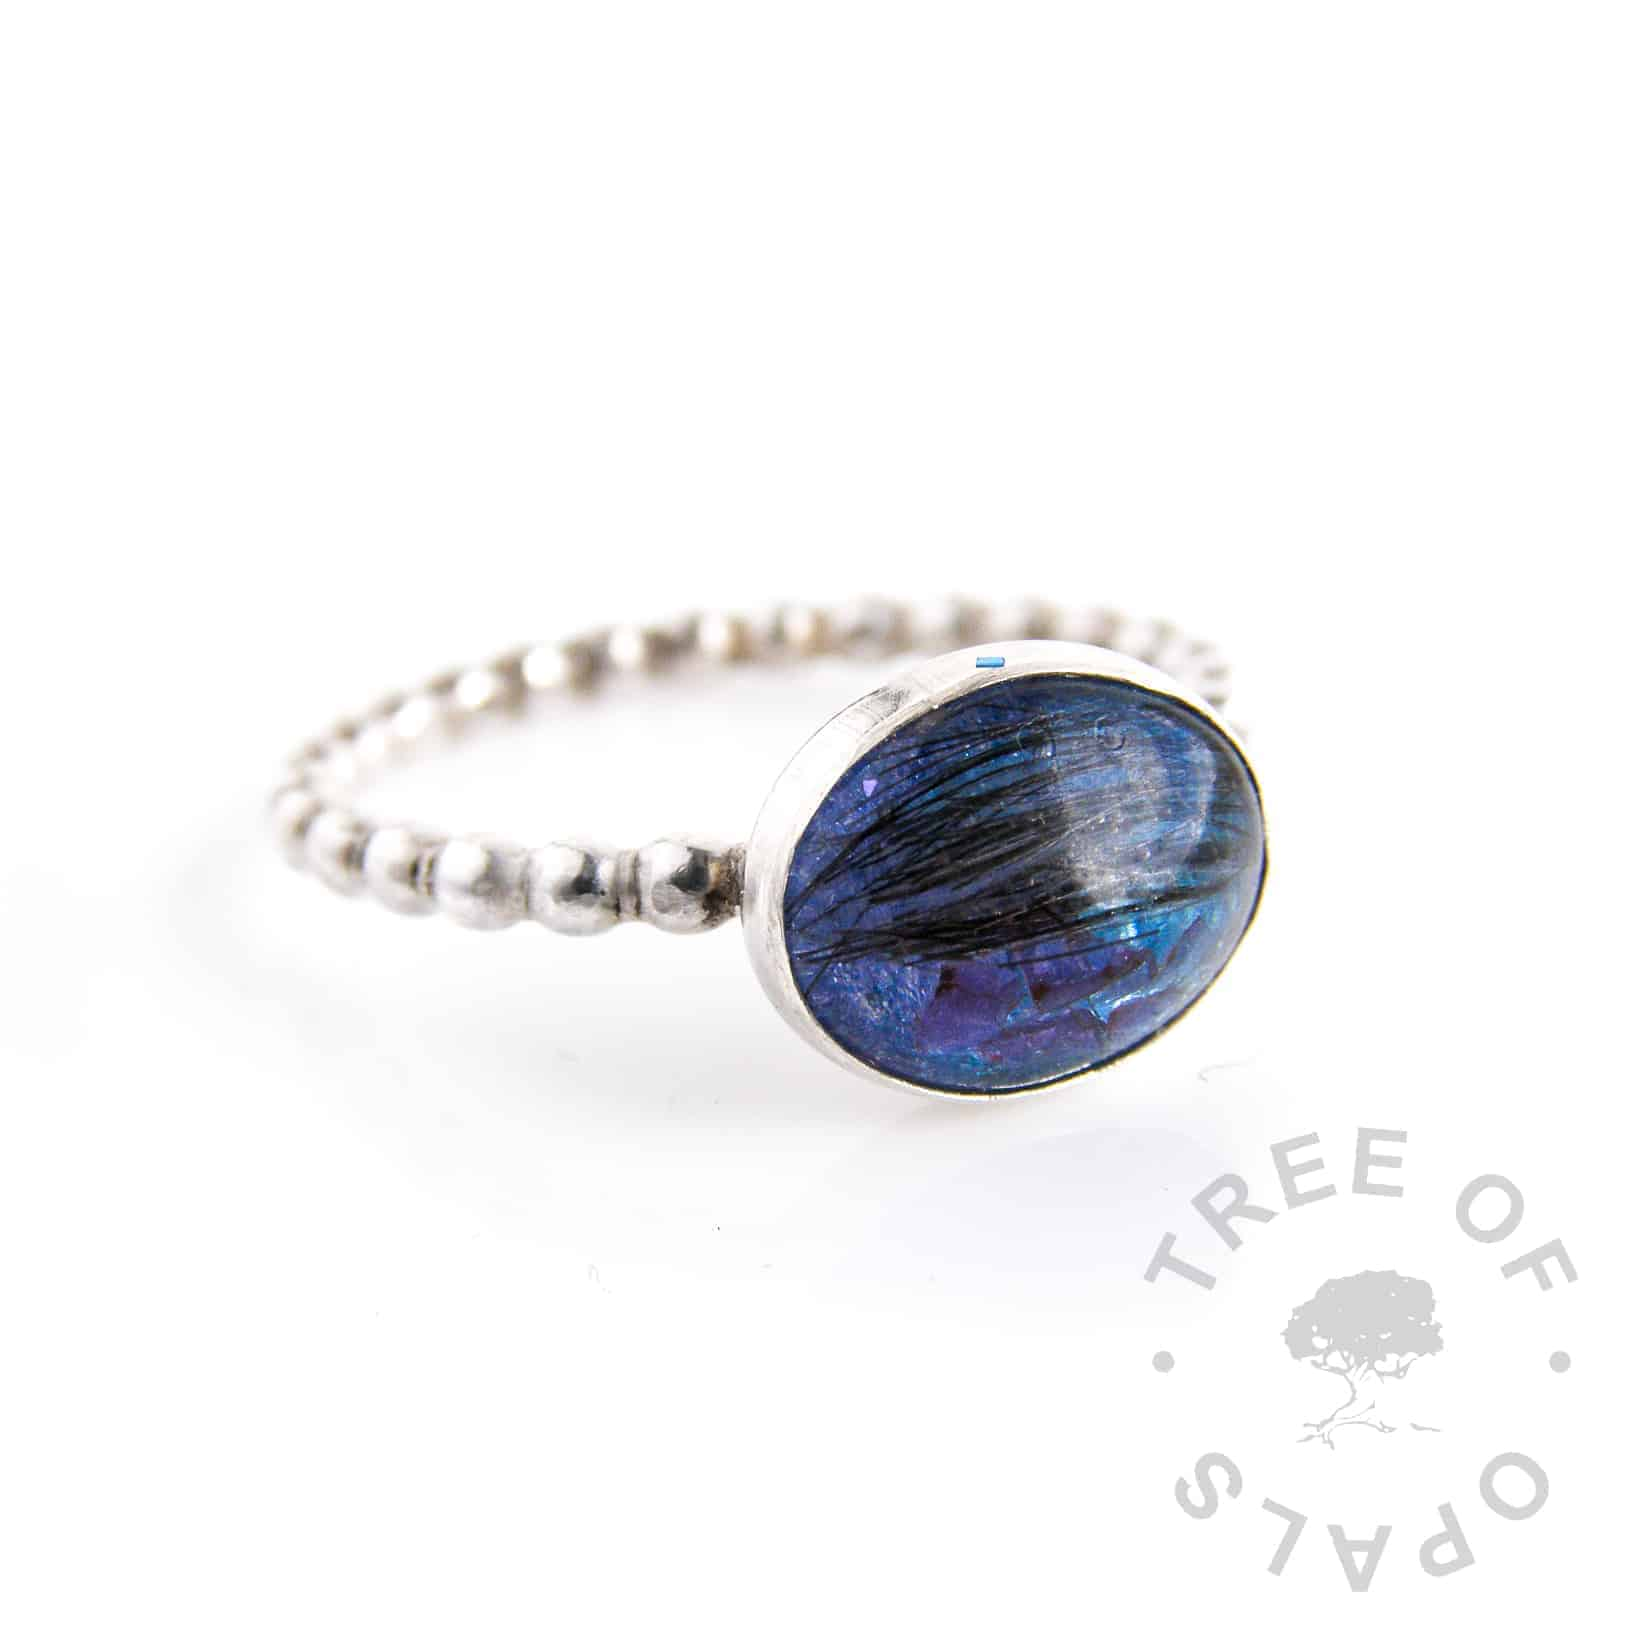 red garnet January birthstone lock of hair ring with various blue shimmers layered on the background in an oval bezel, bubble wire band. Handmade with sterling silver by Tree of Opals